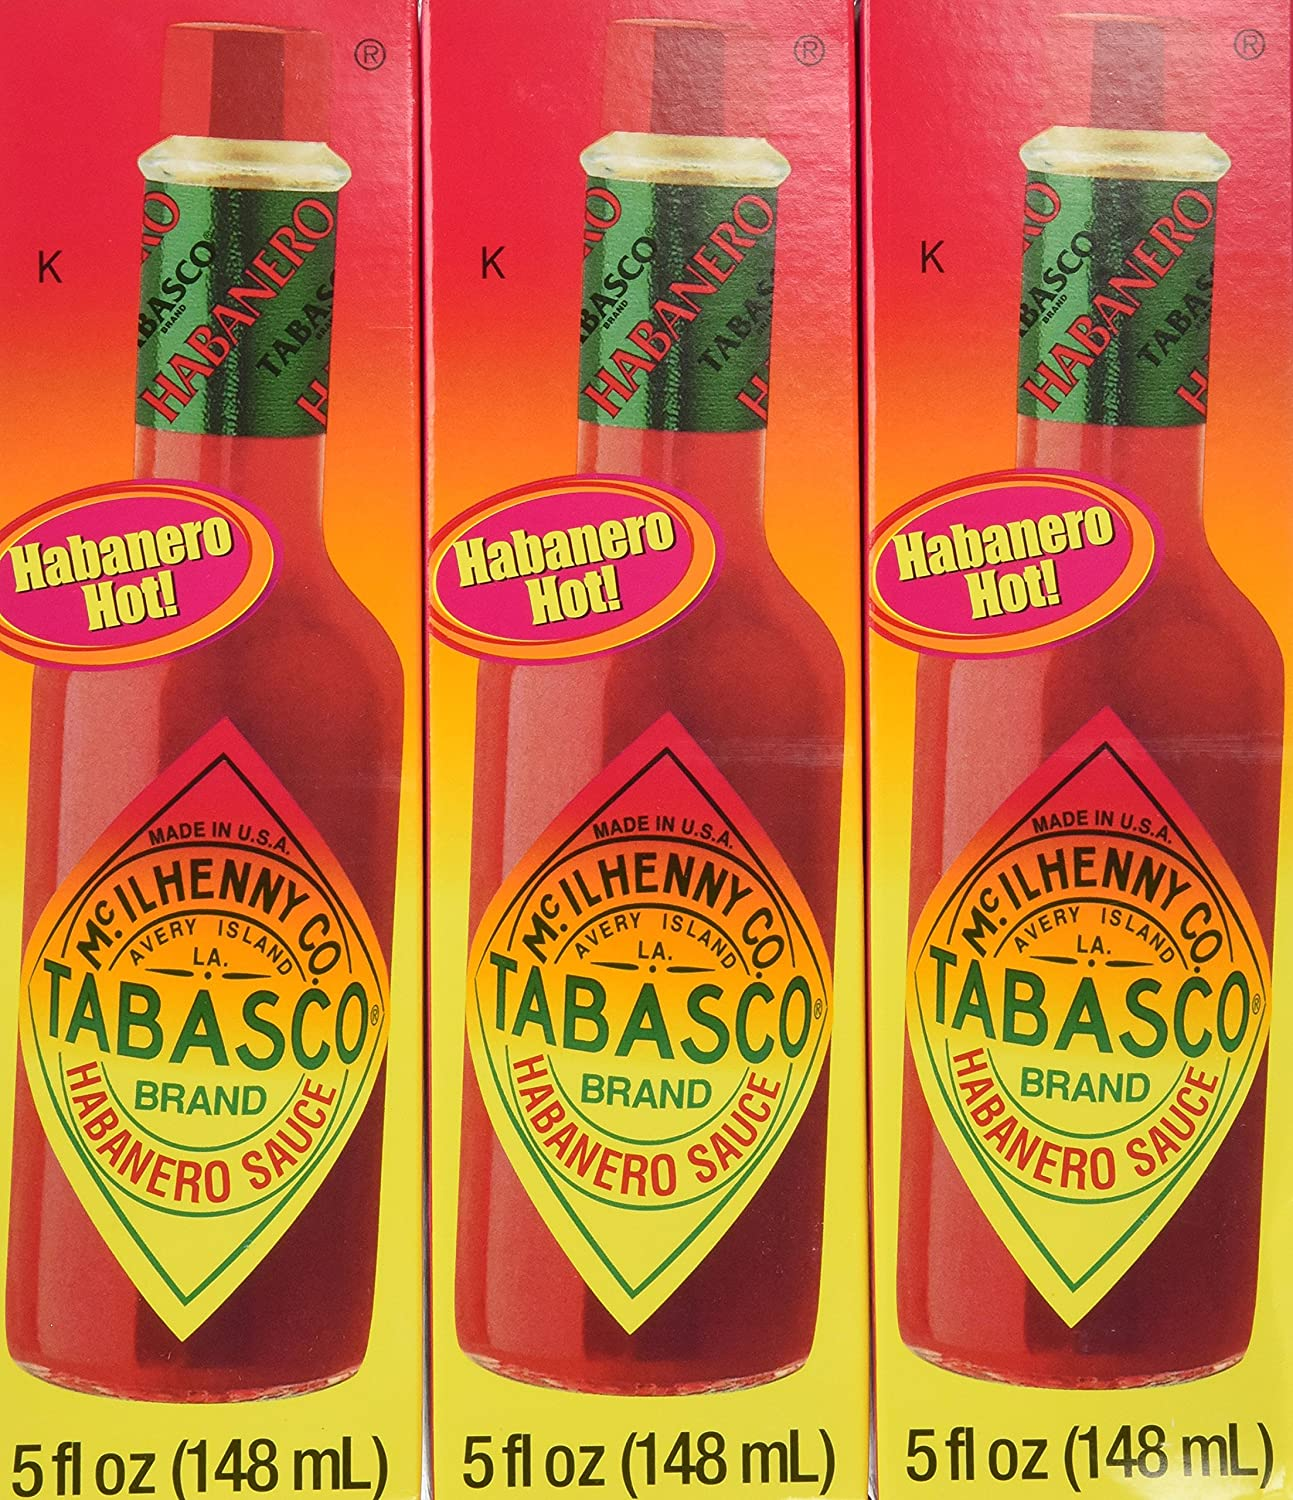 Tabasco Habanero Popular products San Francisco Mall Pepper Sauce 5 12 Pack of Ounce